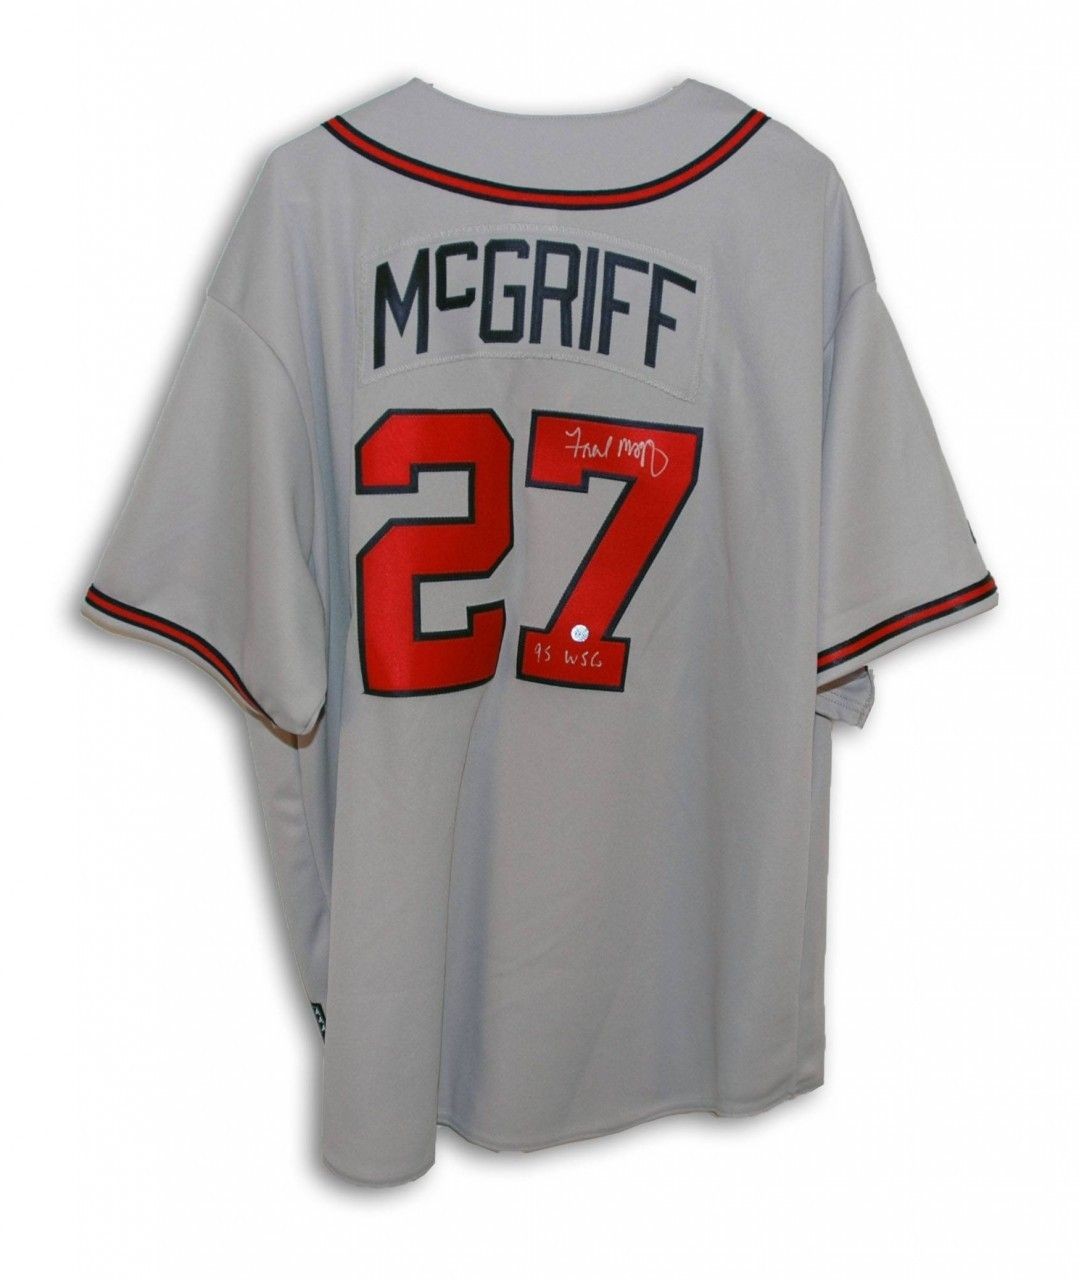 Aaa Sports Memorabilia Llc Fred Mcgriff Atlanta Braves Autographed Gray Majestic Jersey Inscribed 95 Wsc 269 95 Http Atlanta Braves Sports Hero Braves